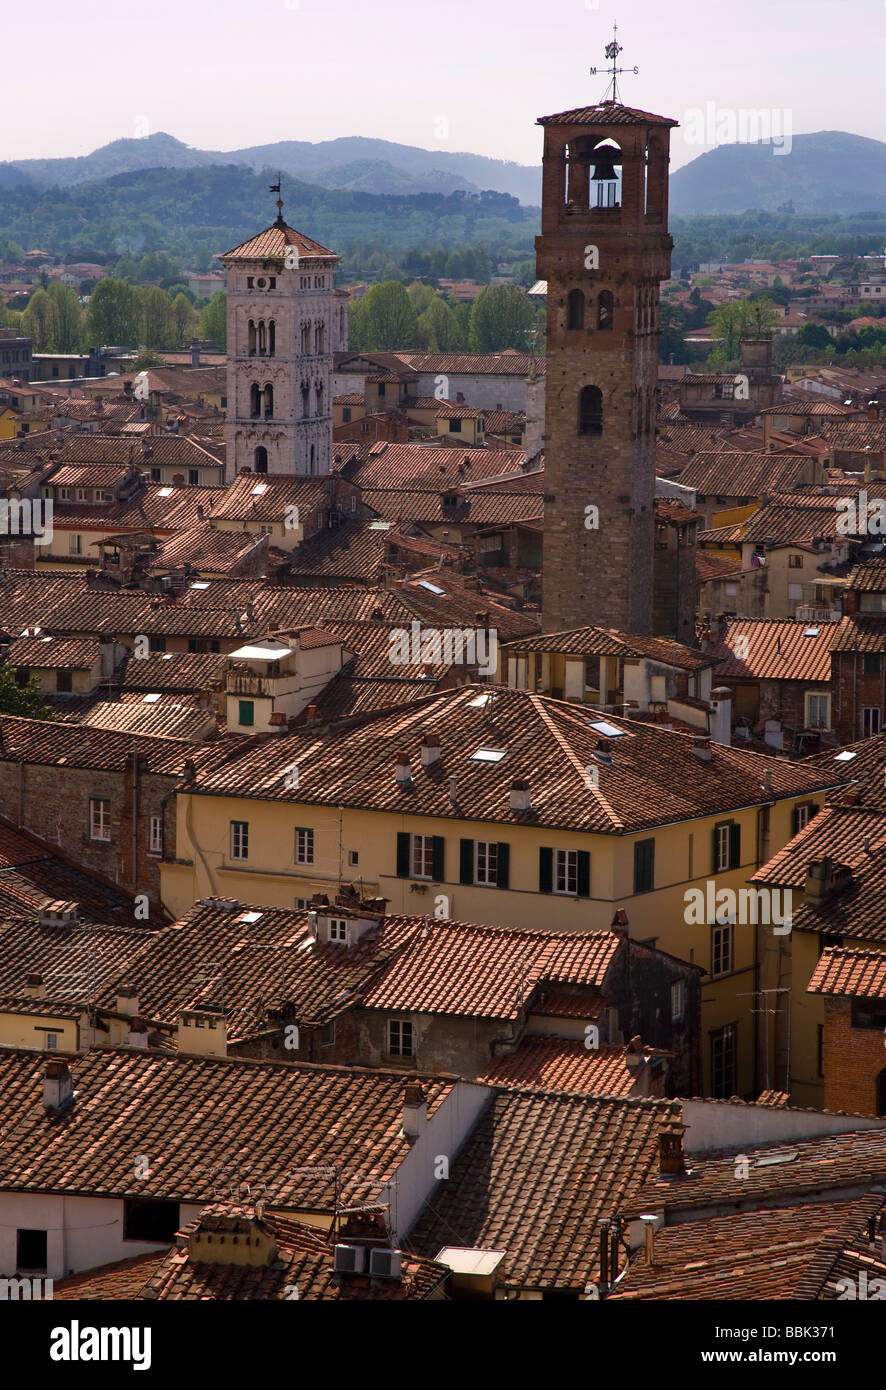 High view of city from Torre Guinigi to torre delle ore  and chiesa di san michele in foro,Lucca,Tuscany,Italy,Europe - Stock Image